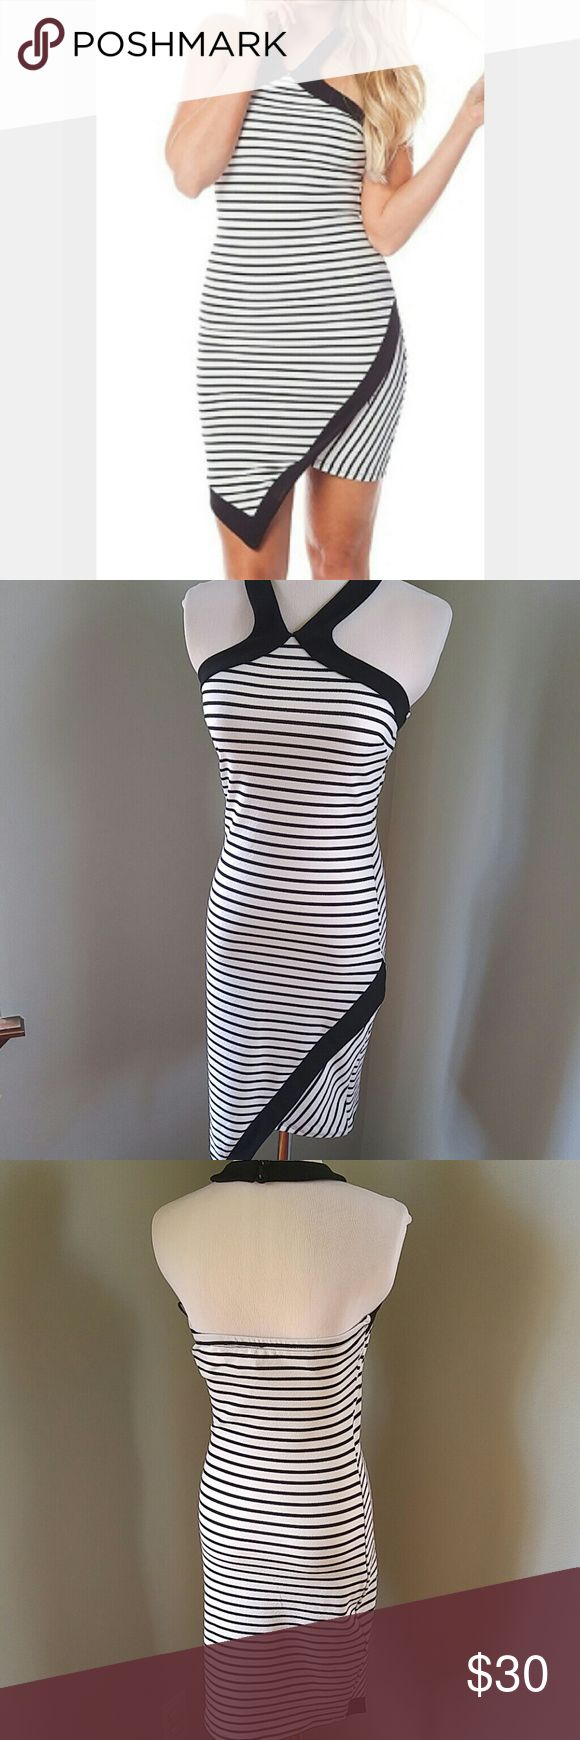 Black and white striped body con dress Assymetrical front makes this sexy dress extra unique. Two buttons on back of halter neck. Polyester spandex. Dress is marked medium but definitely fits small. My dress form is 34/25/35 for reference. Dresses Midi